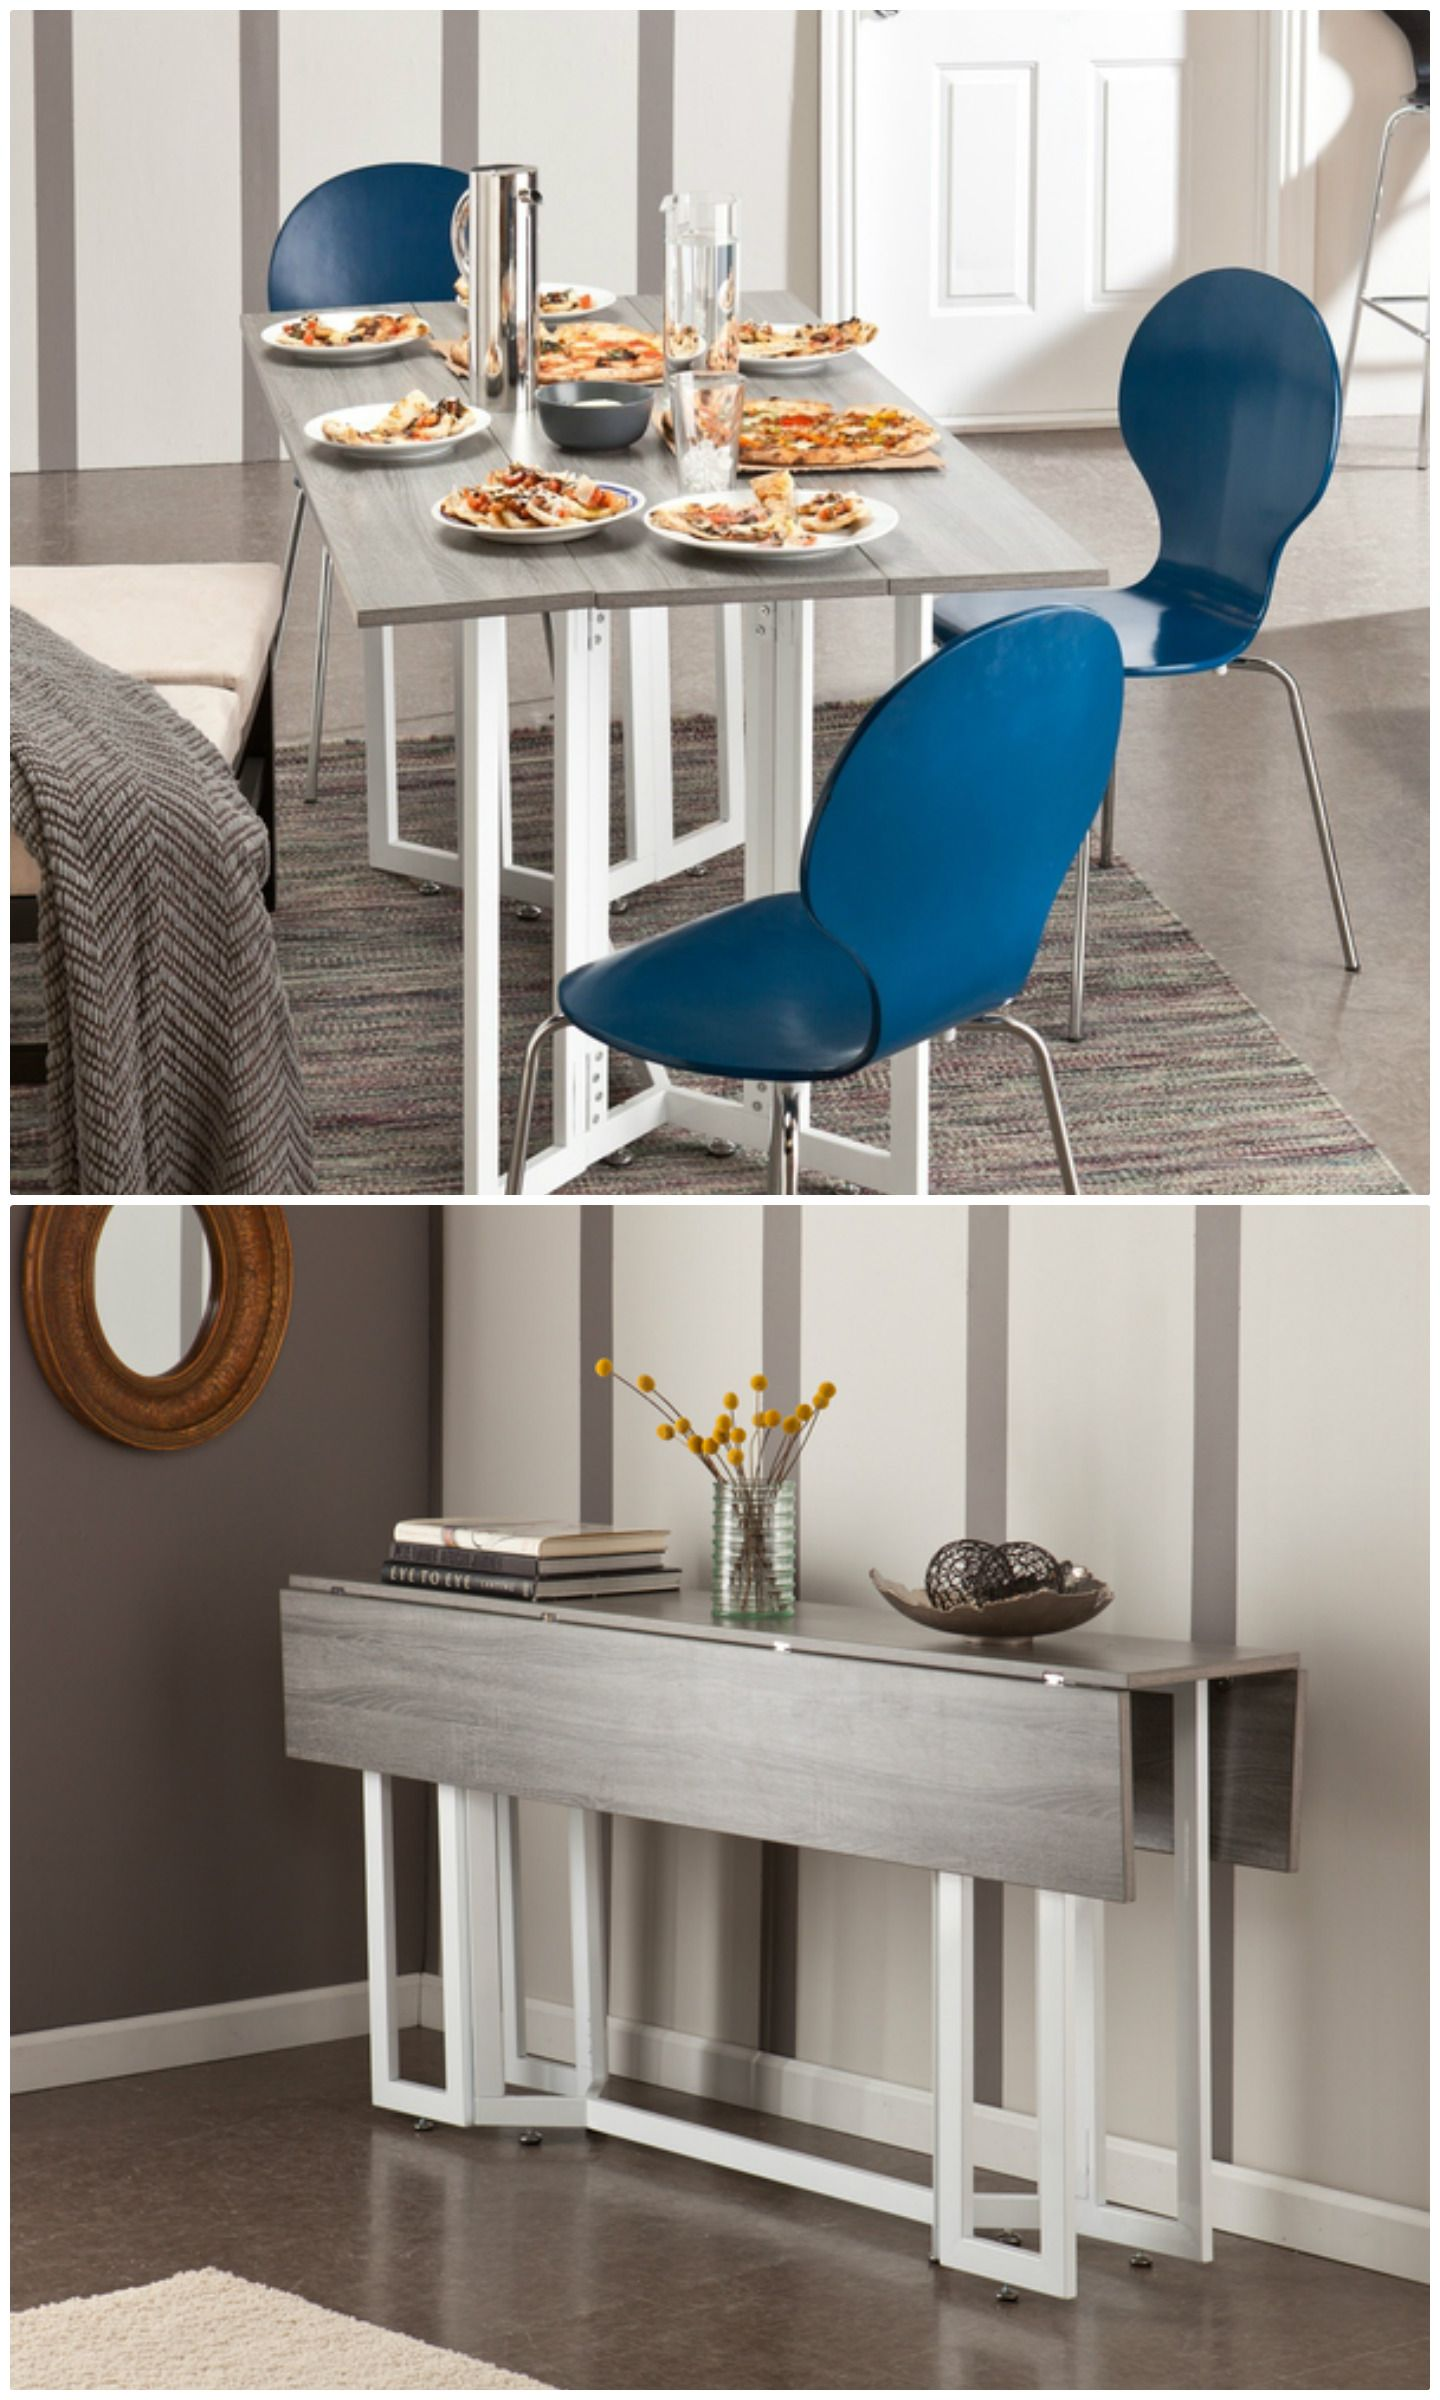 Twenty Dining Tables That Work Great In Small Spaces Dining Table Small Space Space Saving Dining Table Dining Room Small